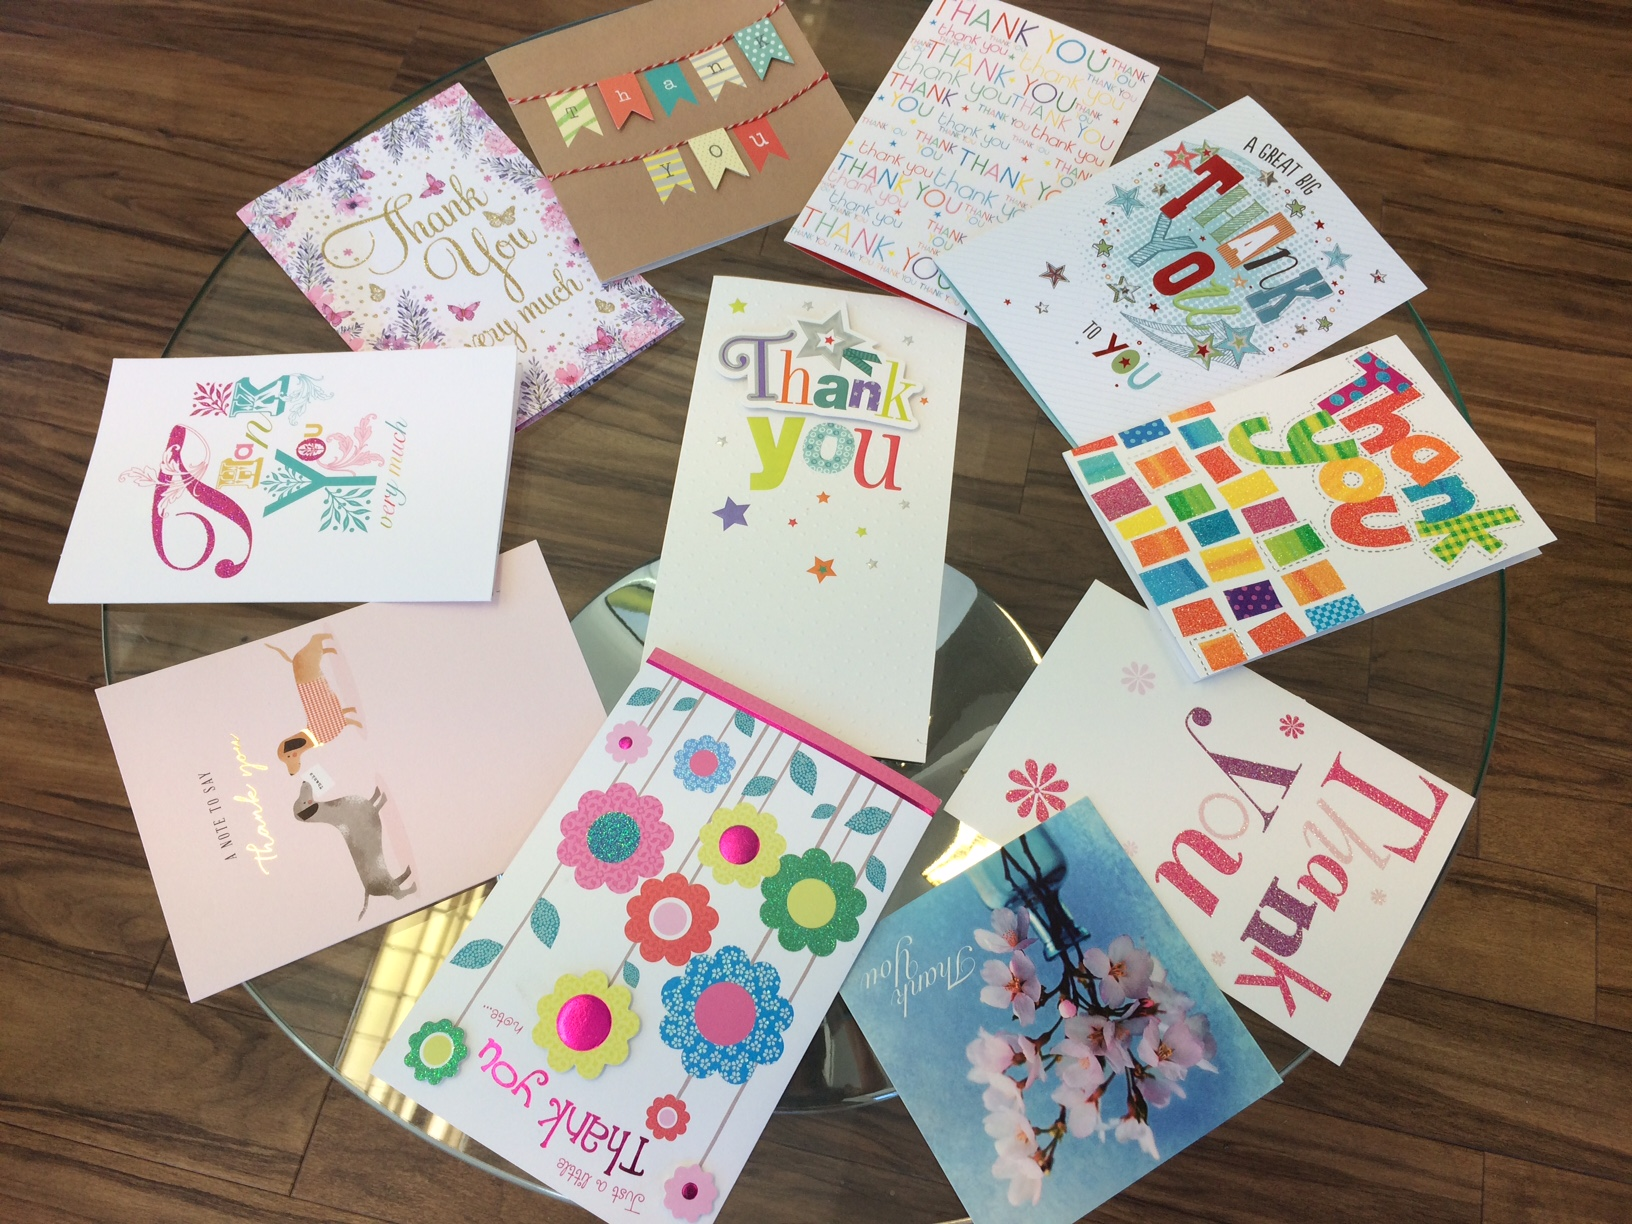 Bearsted Thank you cards